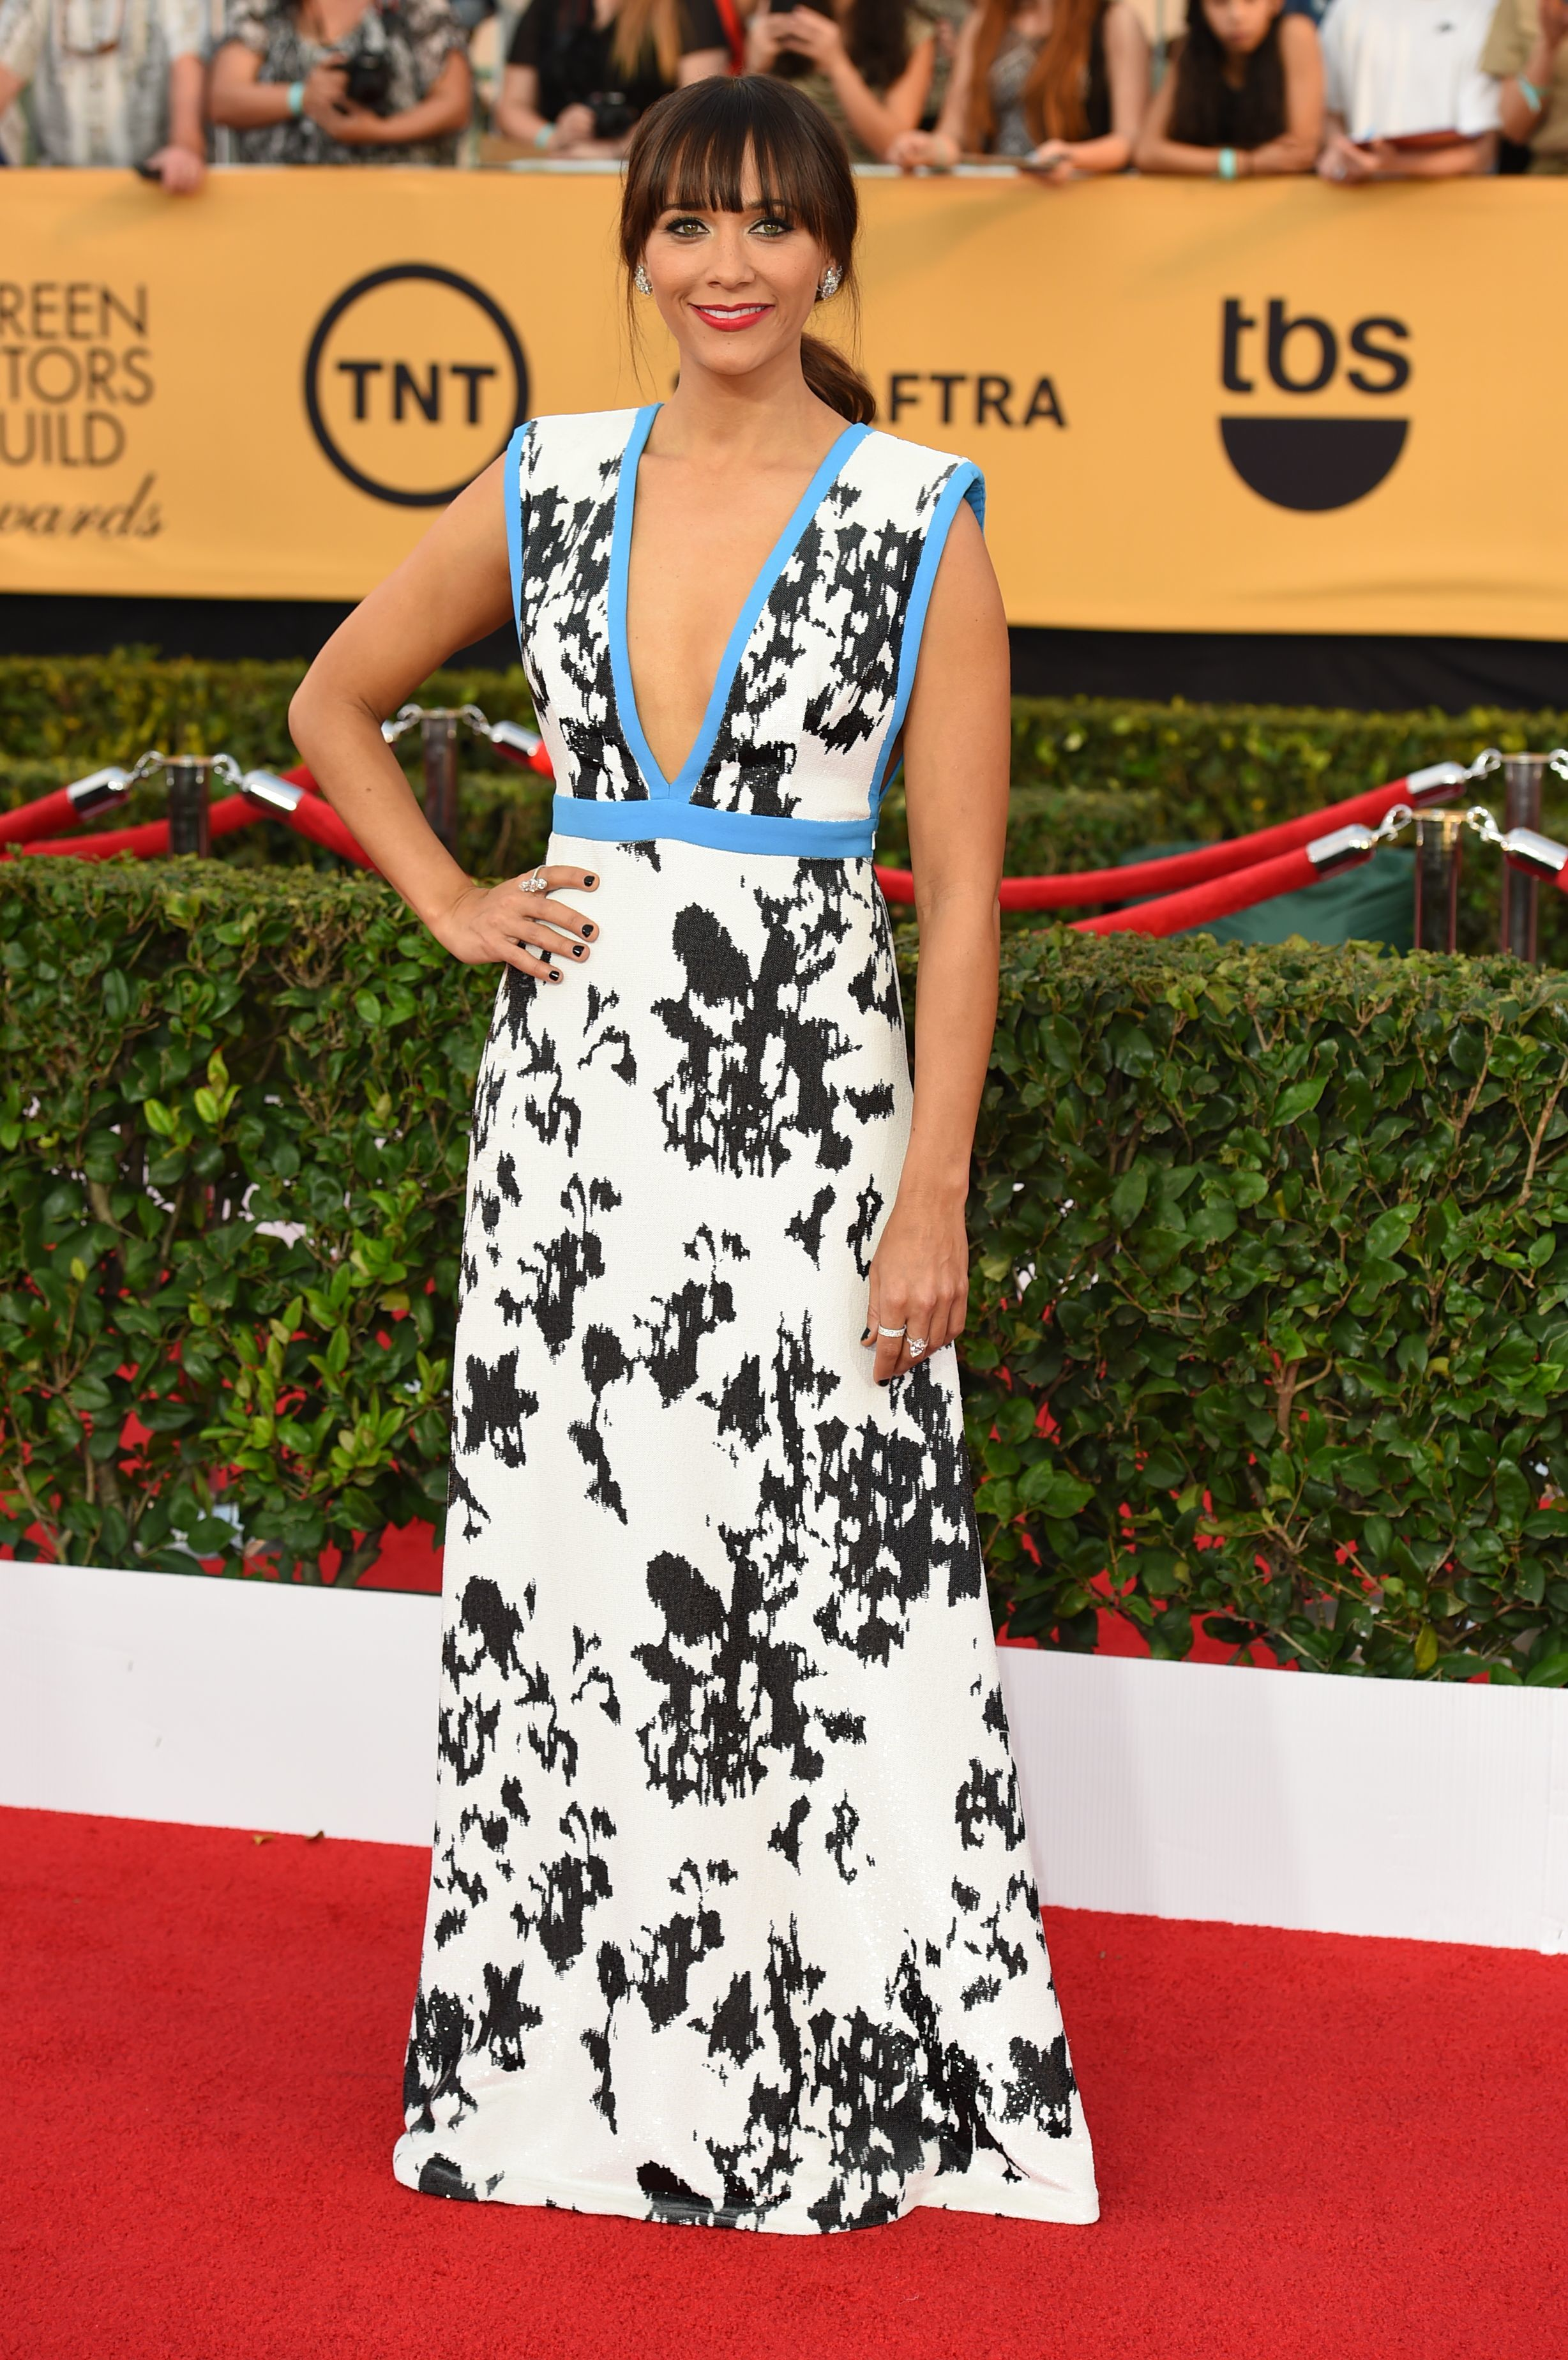 Rashida Jones was complimented on her 'tan' at the SAG Awards